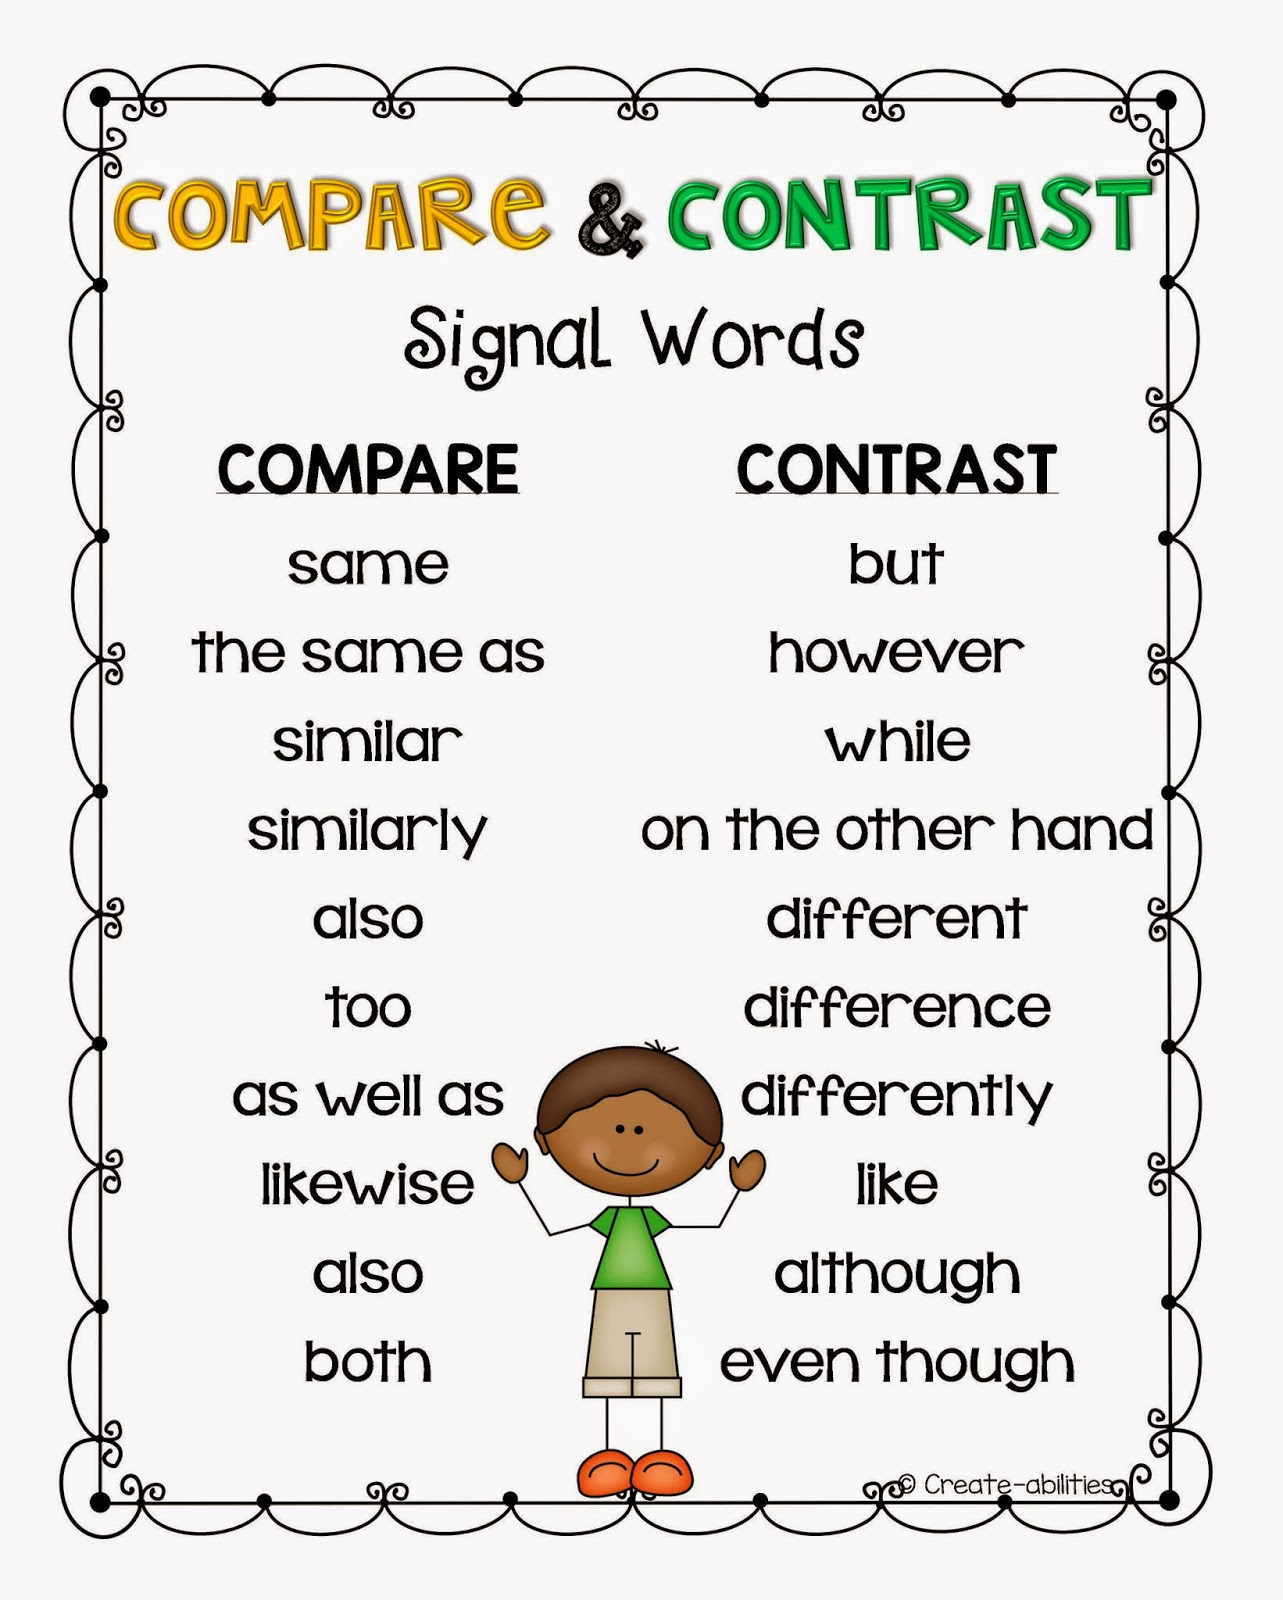 Compare And Contrast Create Abilities